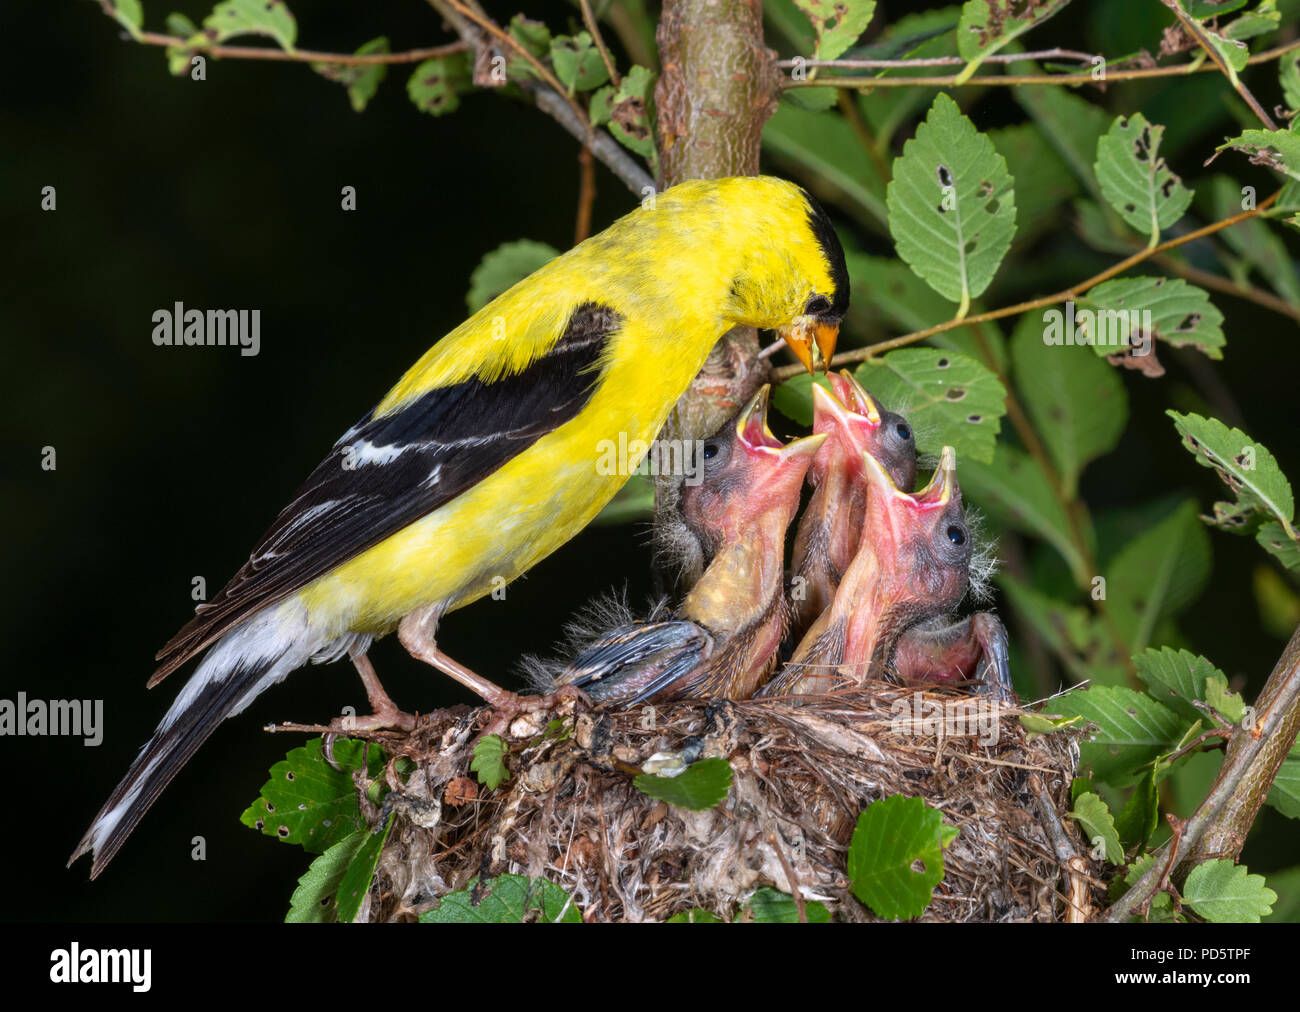 Male American goldfinch (Spinus tristis) feeding nestlings in the nest, Iowa, USA - Stock Image